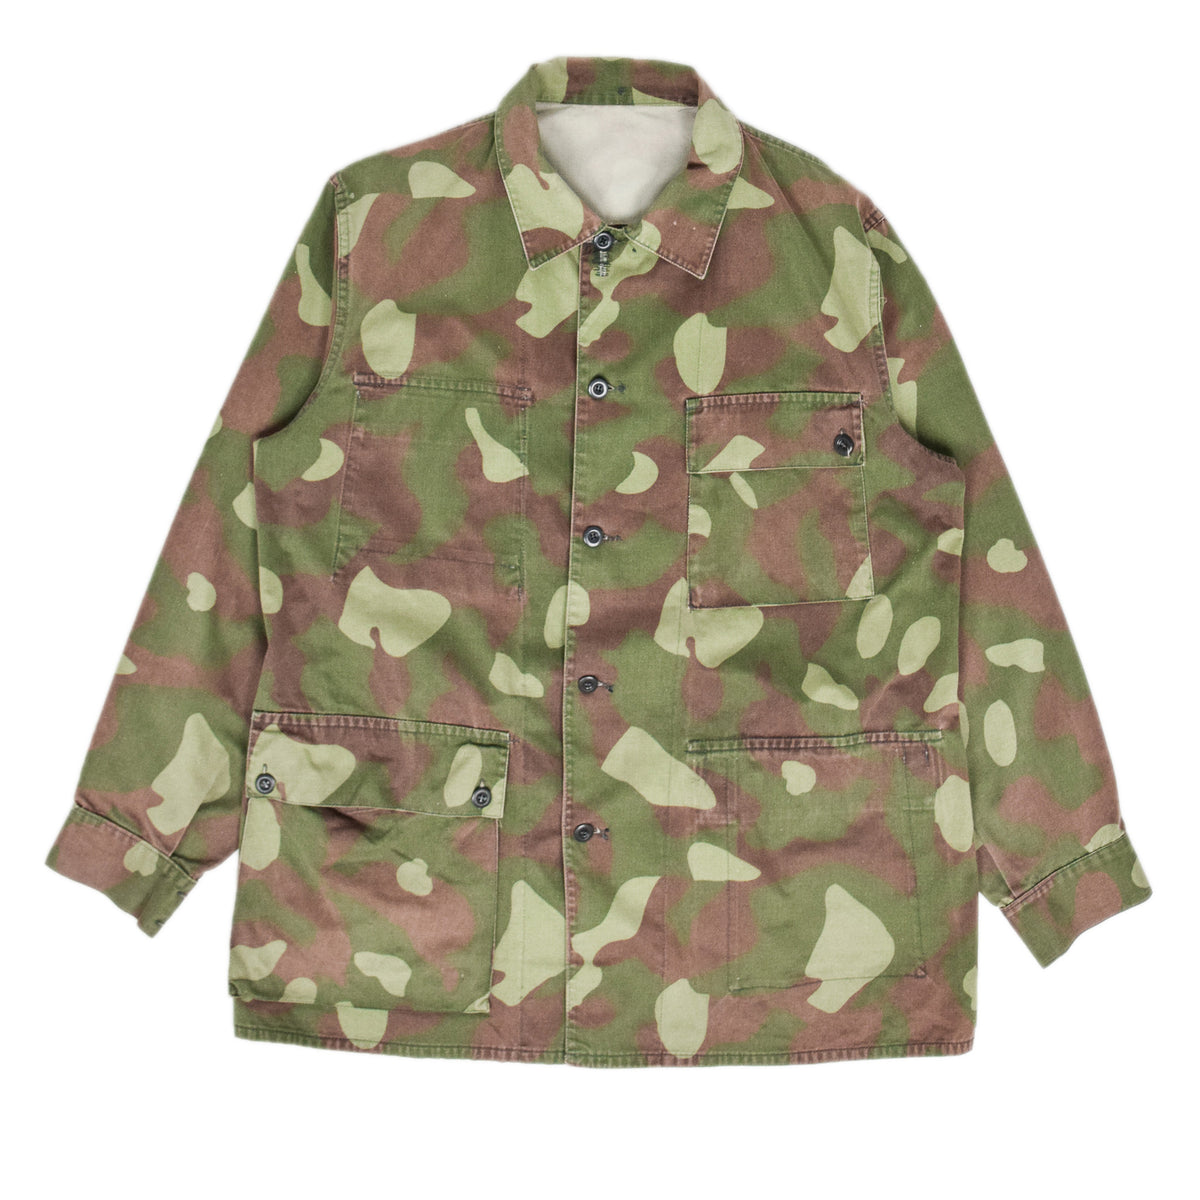 Vintage 80s Military Finnish Army Green Camo Mountain Field Jacket XL FRONT